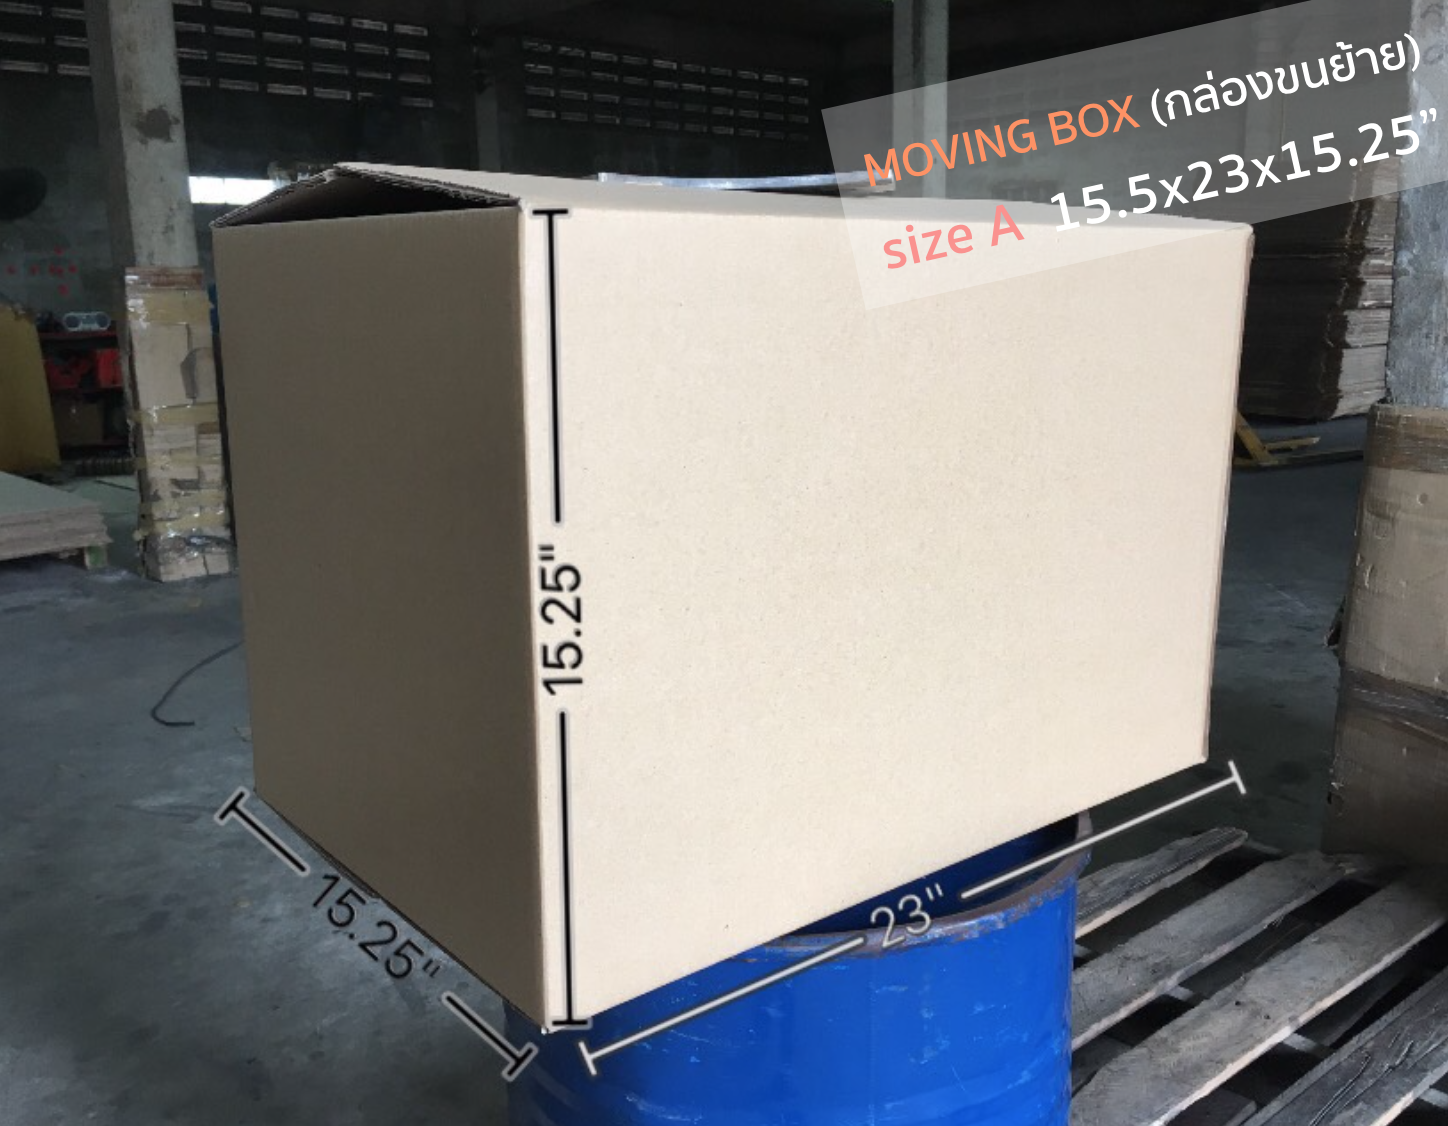 Best carton box for moving ^^  (moving boxes, packing boxes, shipping boxes)